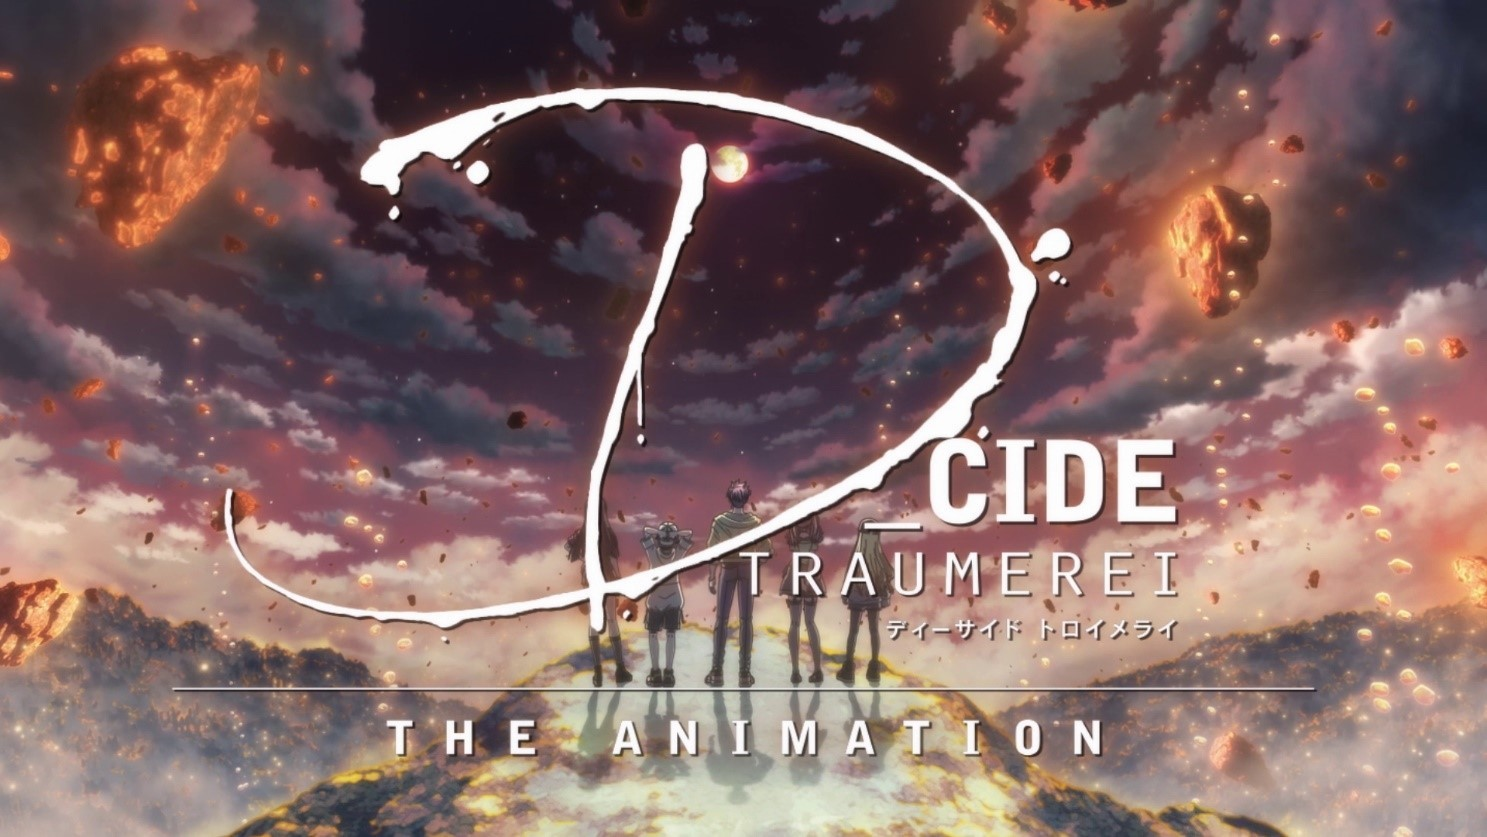 TVアニメ「D_CIDE TRAUMEREI THE ANIMATION」オープニング映像サムネイル